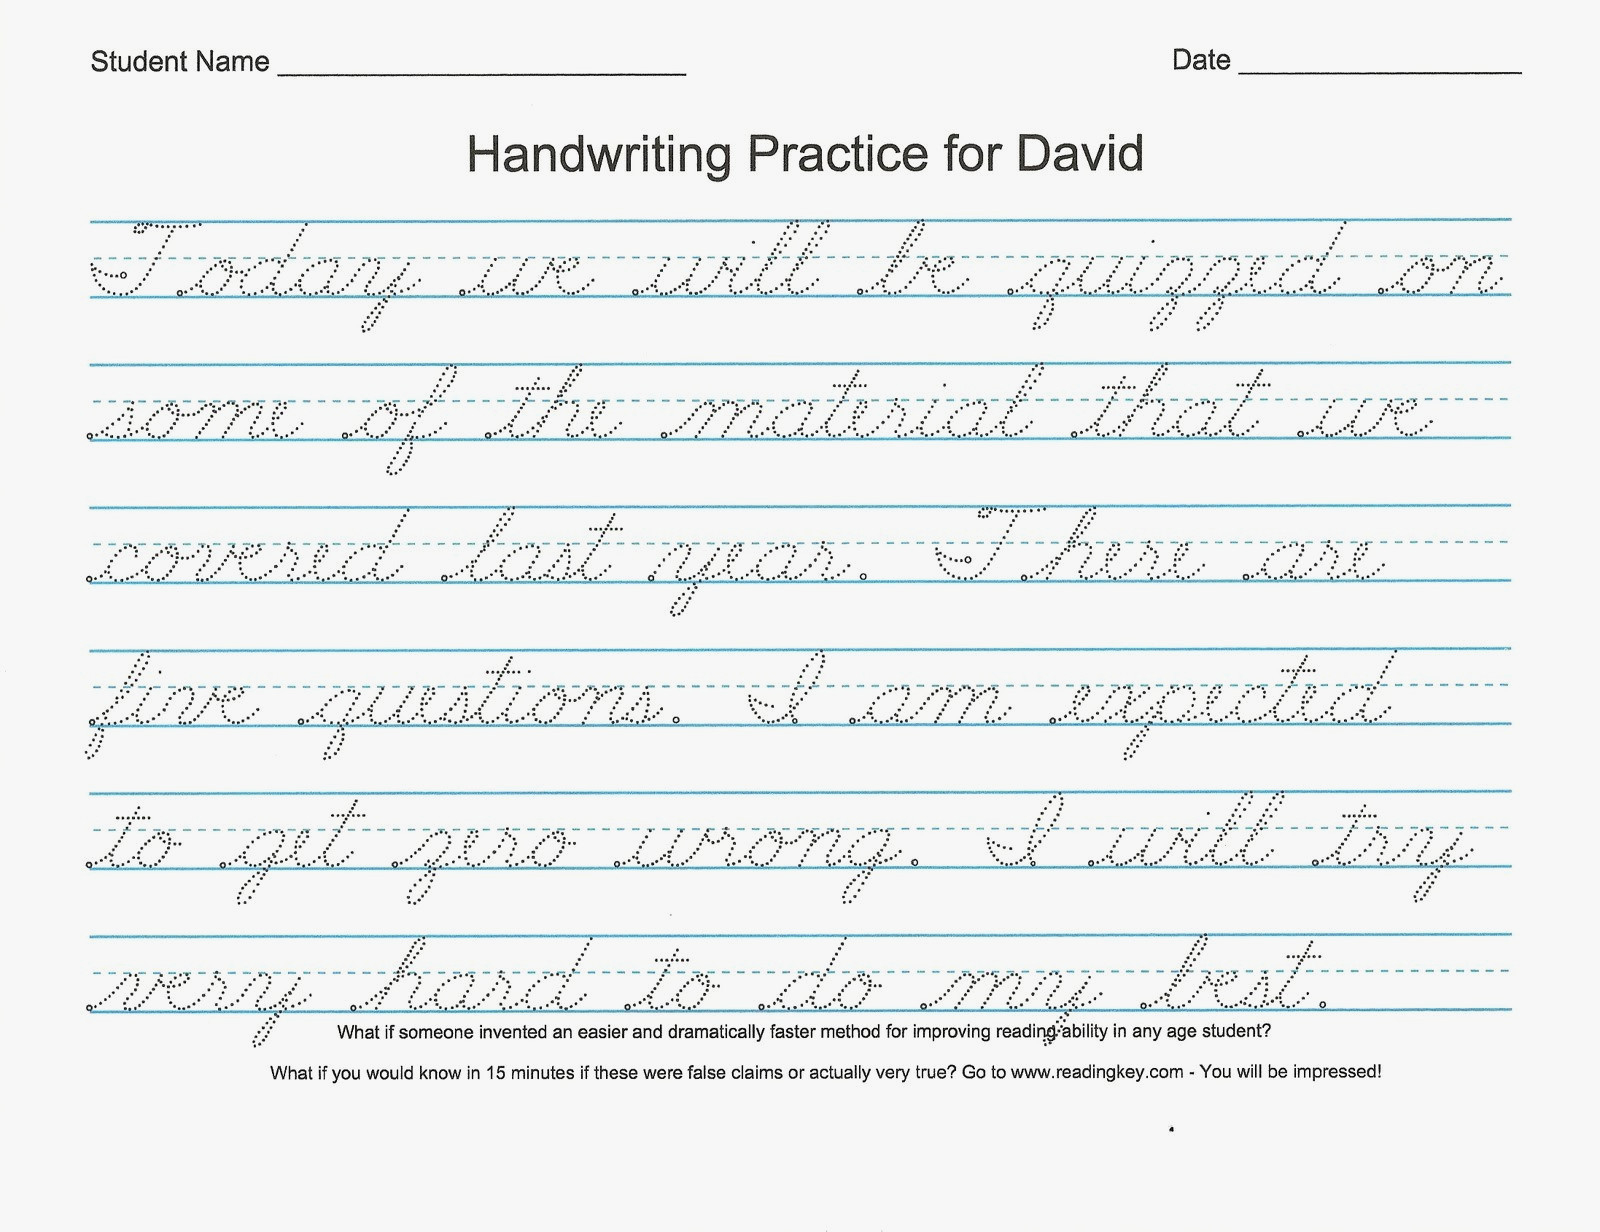 54 Unique Of Free Printable Cursive Handwriting Worksheets Pic | Free Printable Worksheets Handwriting Practice